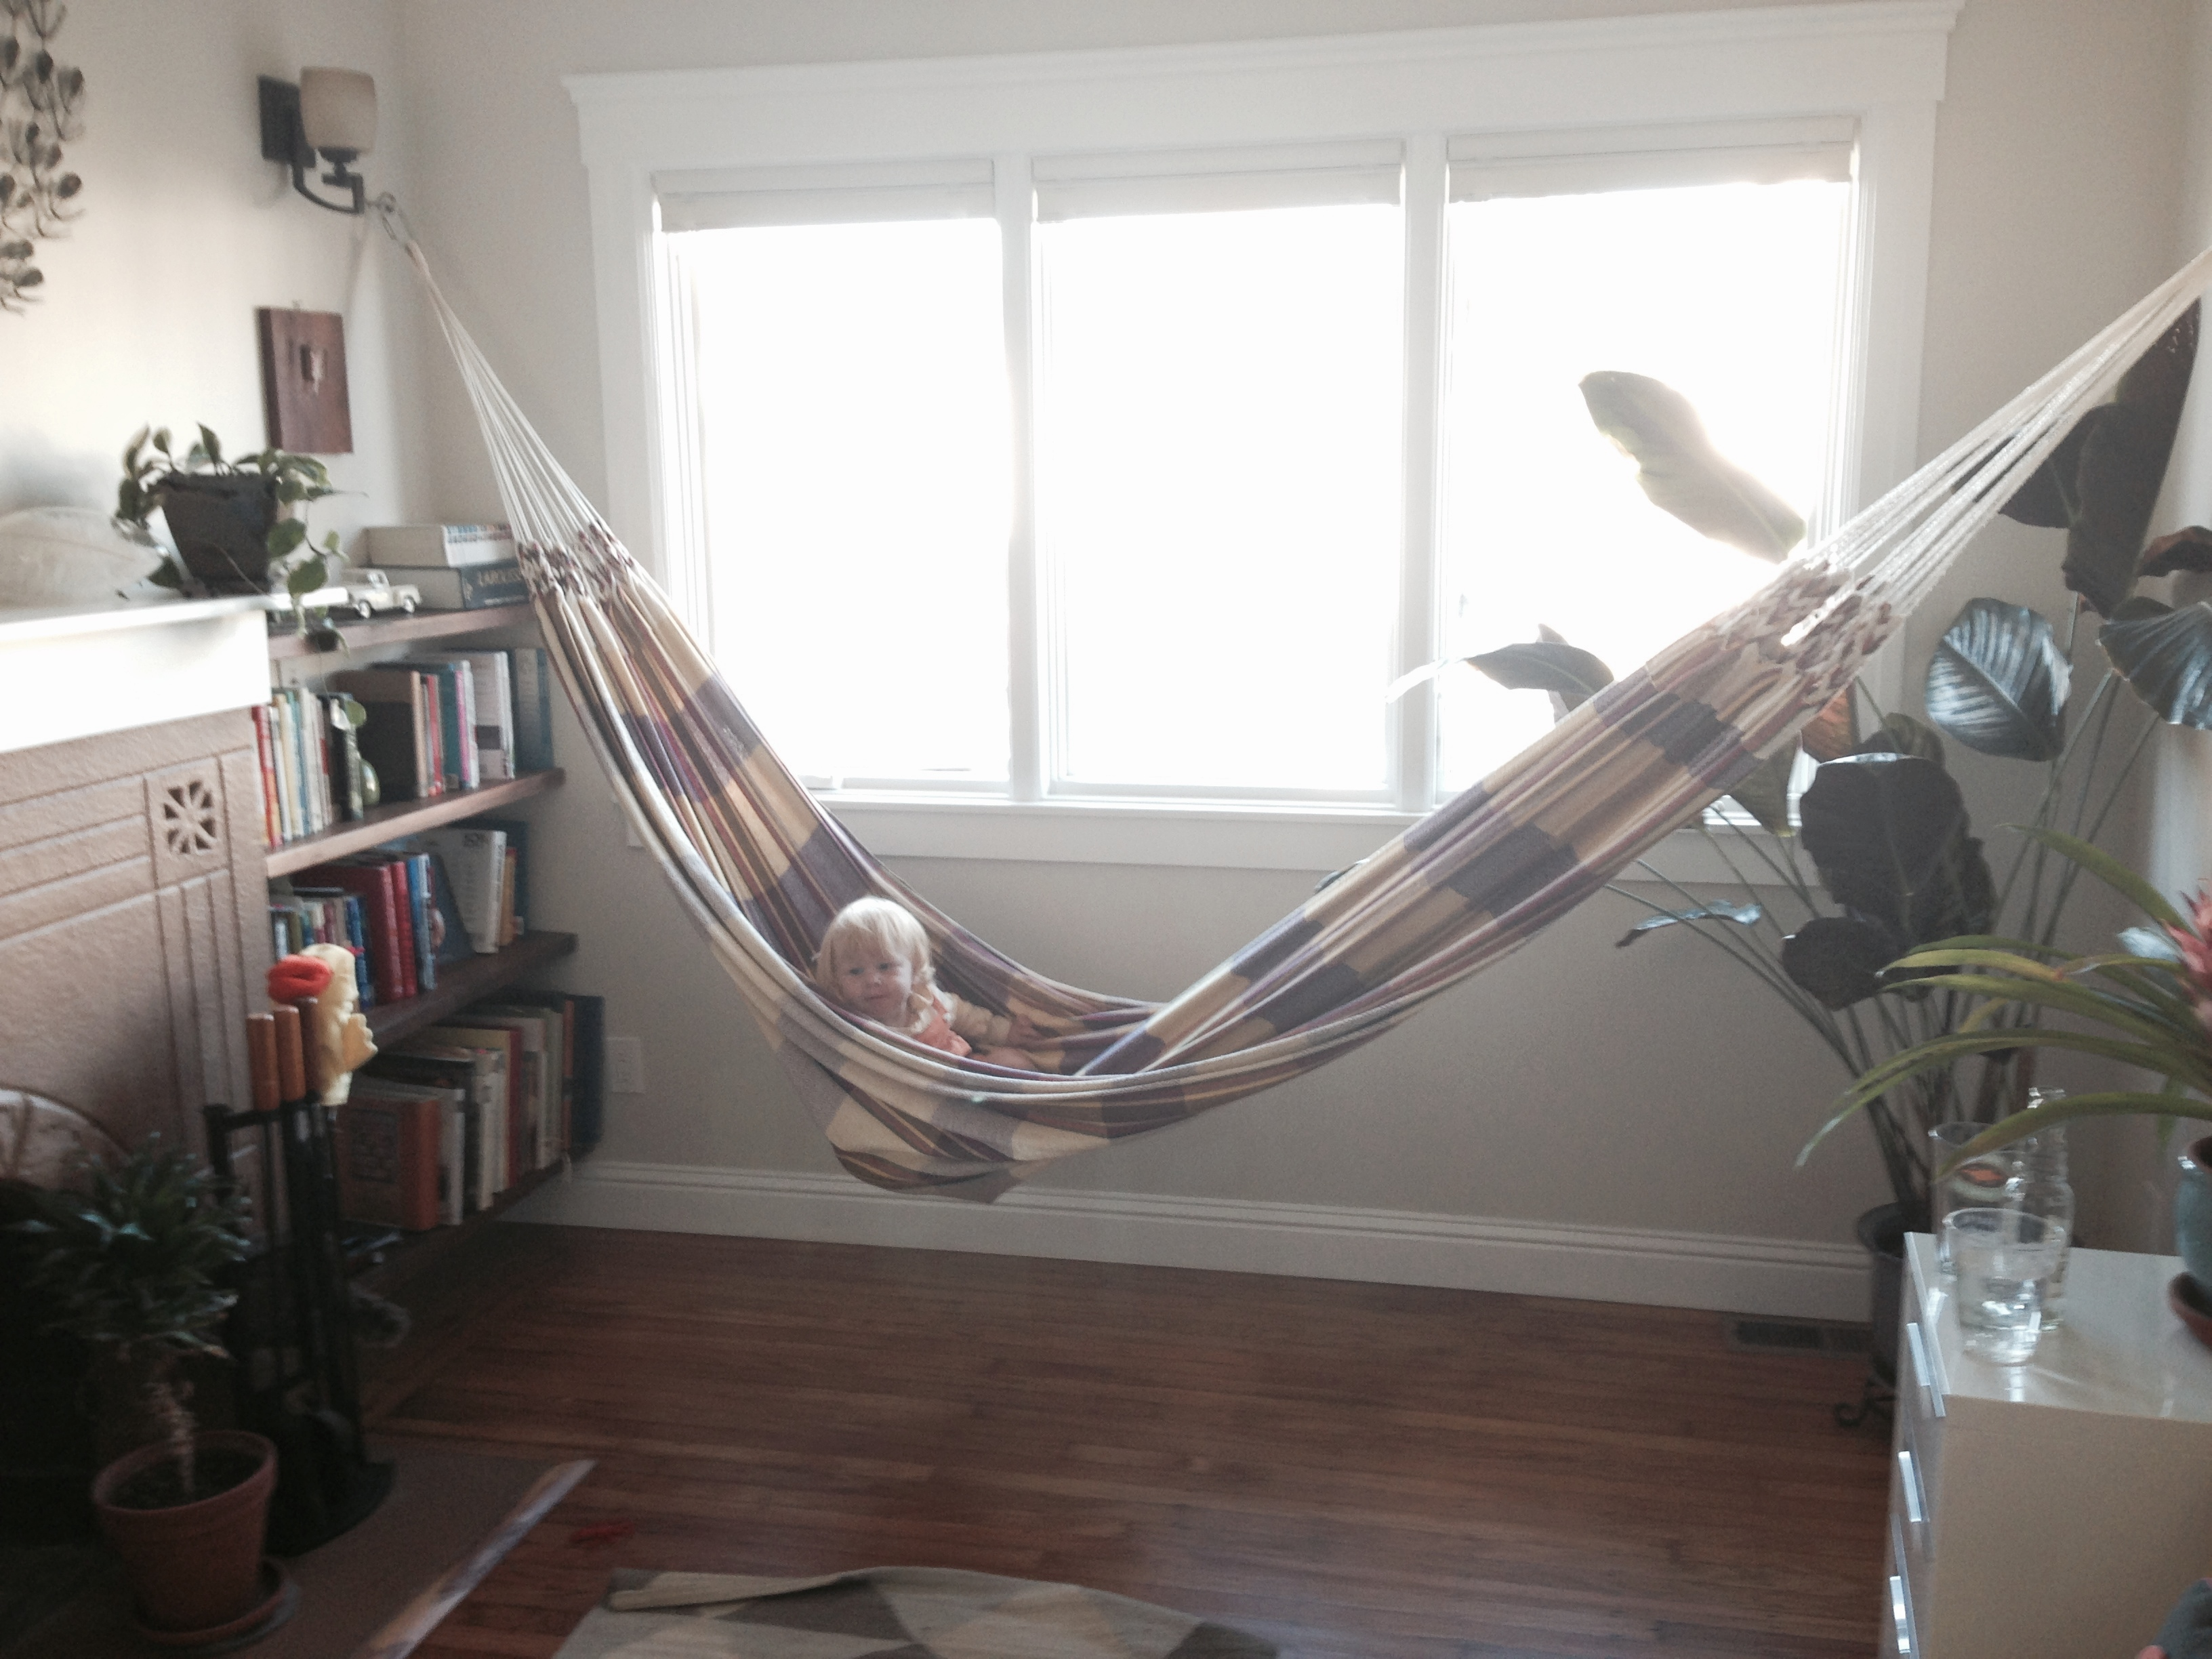 Willa testing out the hammock